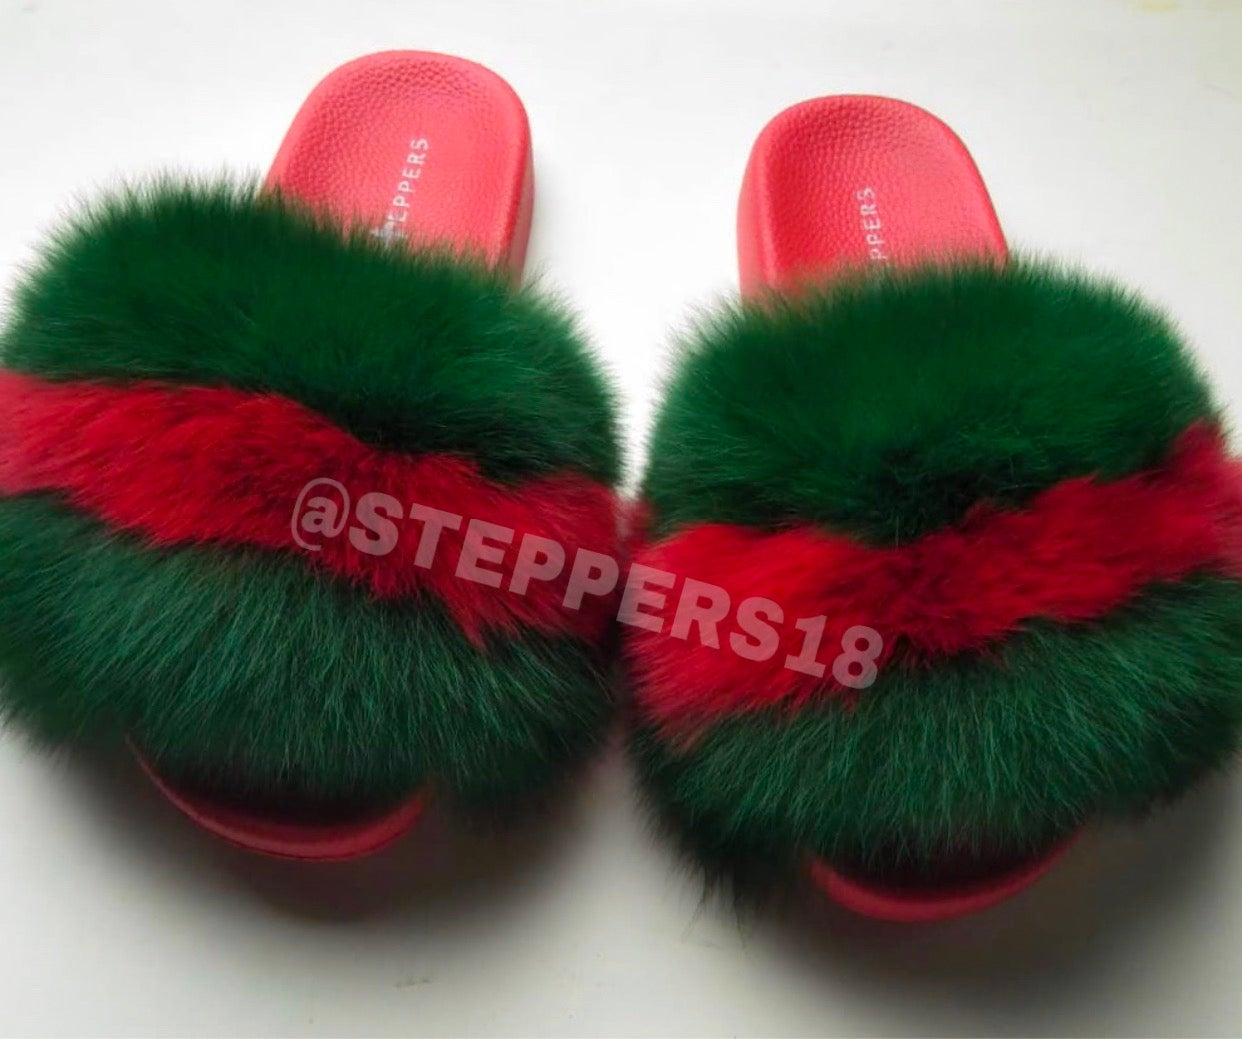 MISTLETOE STEPPERS